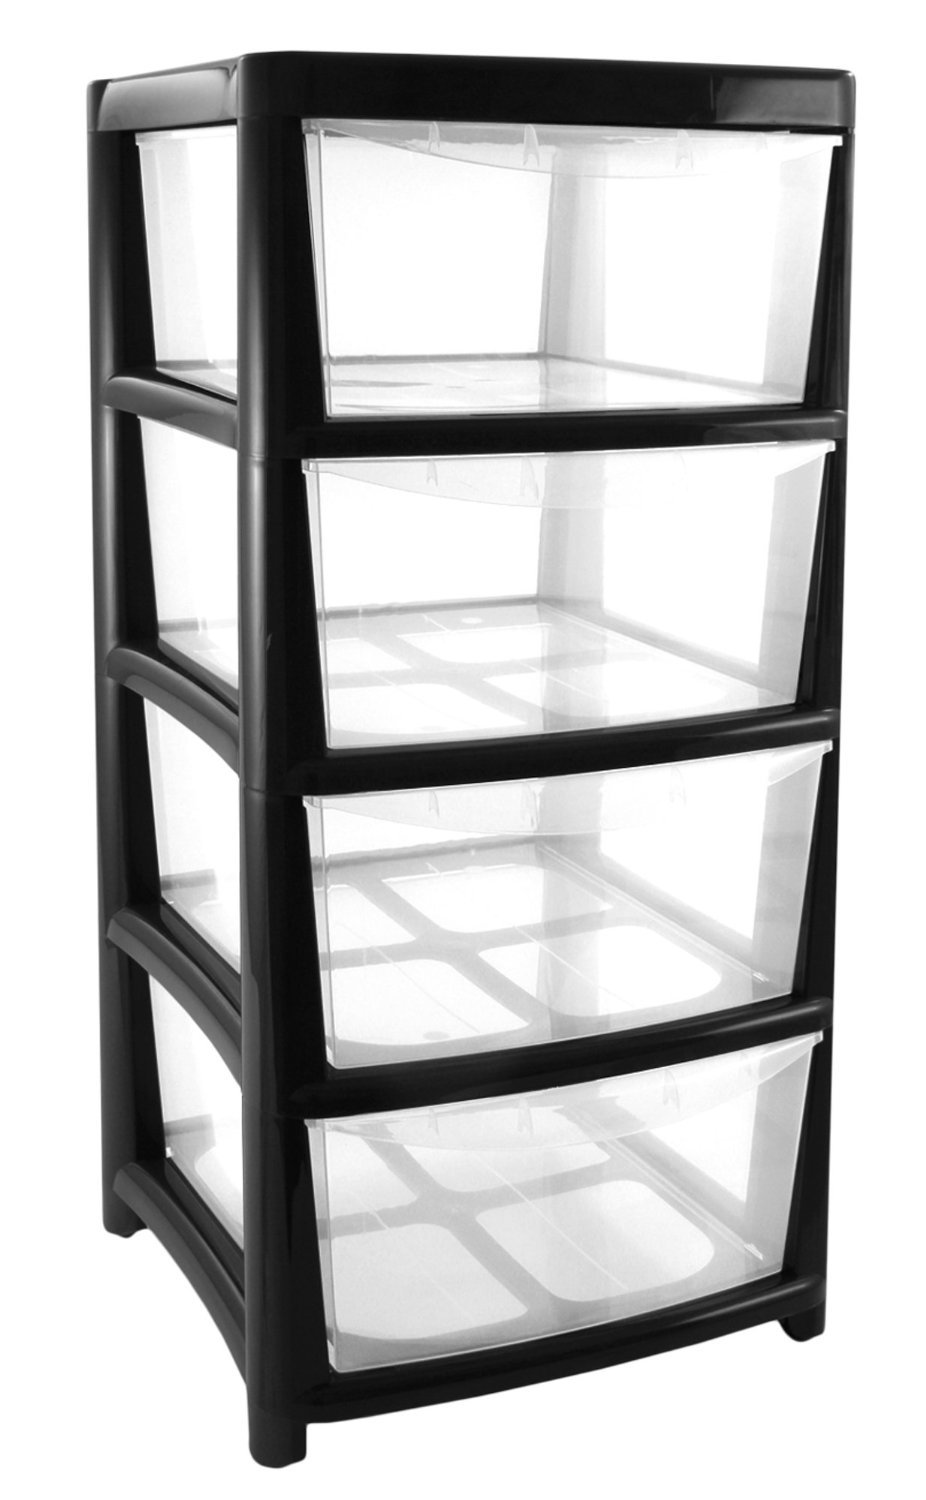 Drawer Large Plastic Storage Unit Black Office Or Home Amazon Co Uk Kitchen Home